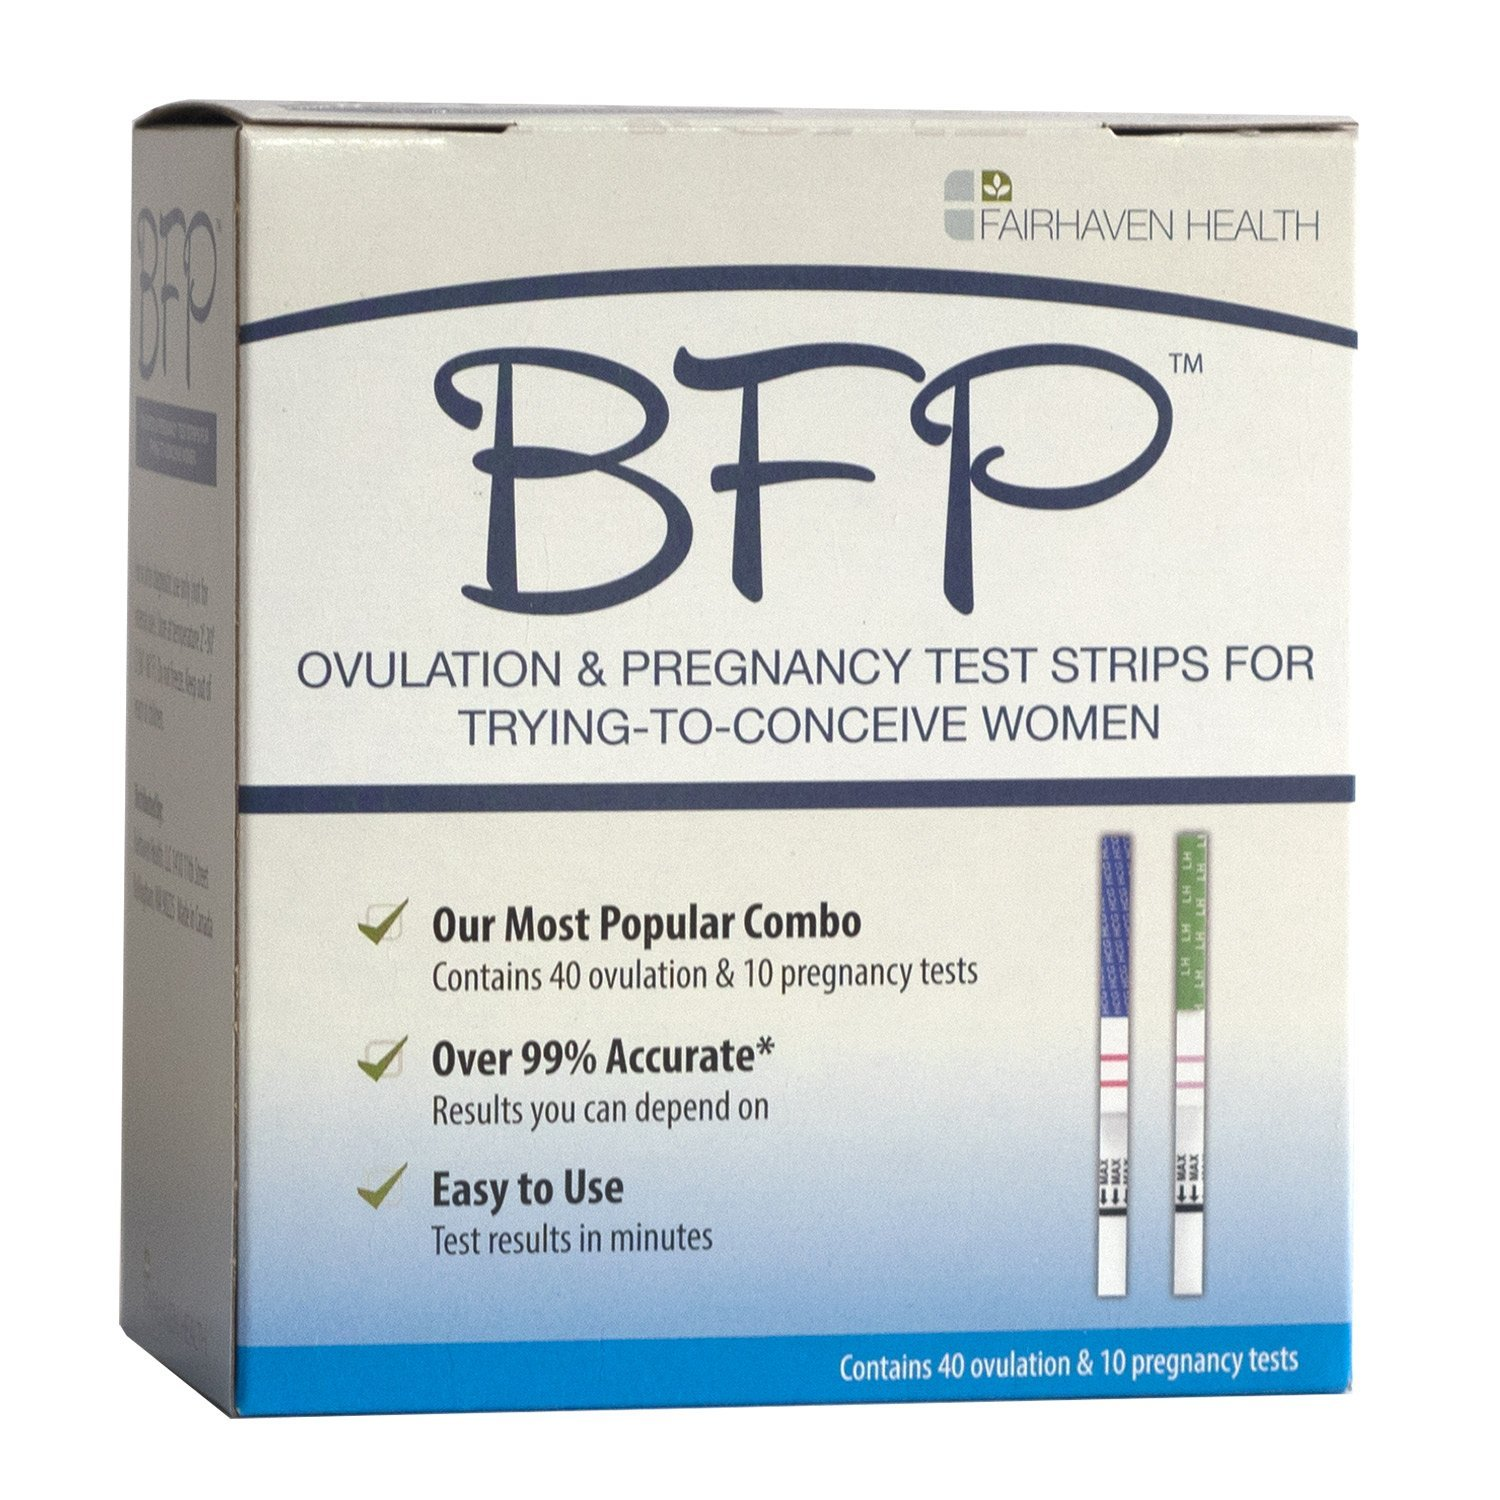 BFP Ovulation & Pregnancy Test Strips, Made in N. America, 40 LH Ovulation & 10 hcg Pregnancy Tests - Early Predictor Kit for Fertility Fairhaven Health